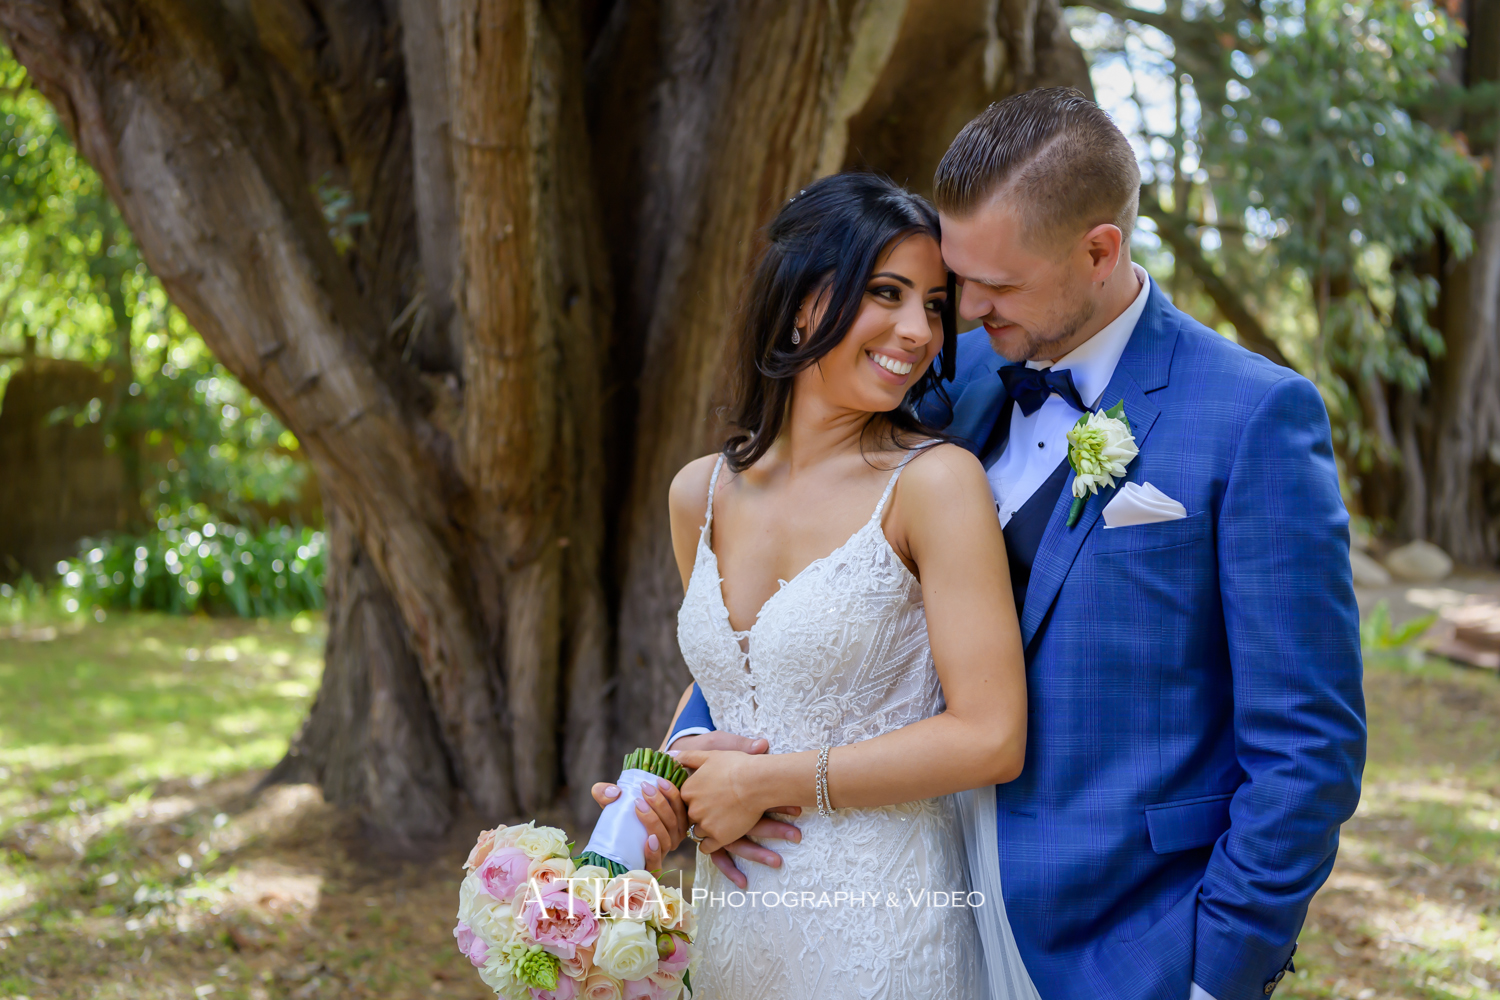 , Melbourne Wedding Photography by ATEIA Photography & Video